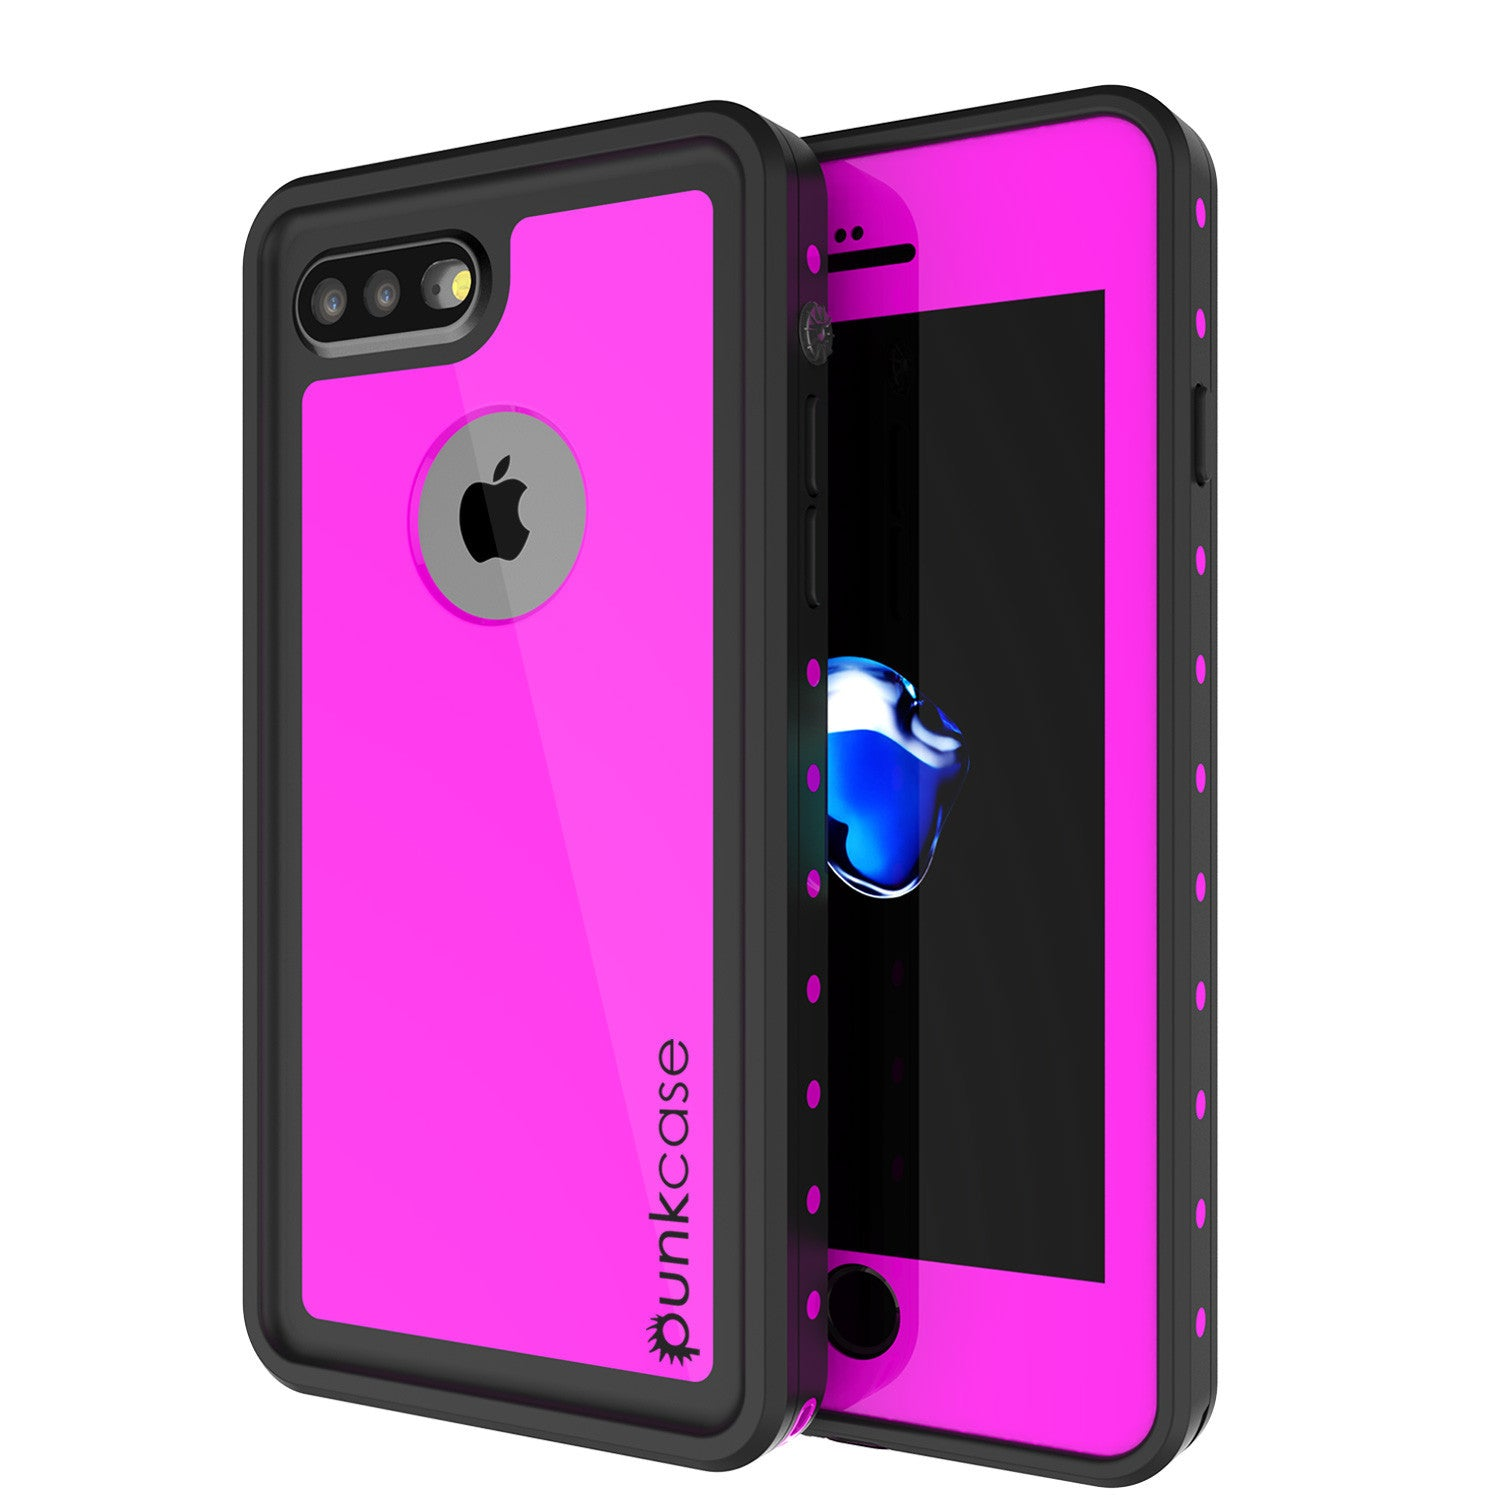 iPhone 8+ Plus Waterproof Case, Punkcase [StudStar Series] [Pink] [Slim Fit] [Shockproof] [Dirtproof] [Snowproof] Armor Cover